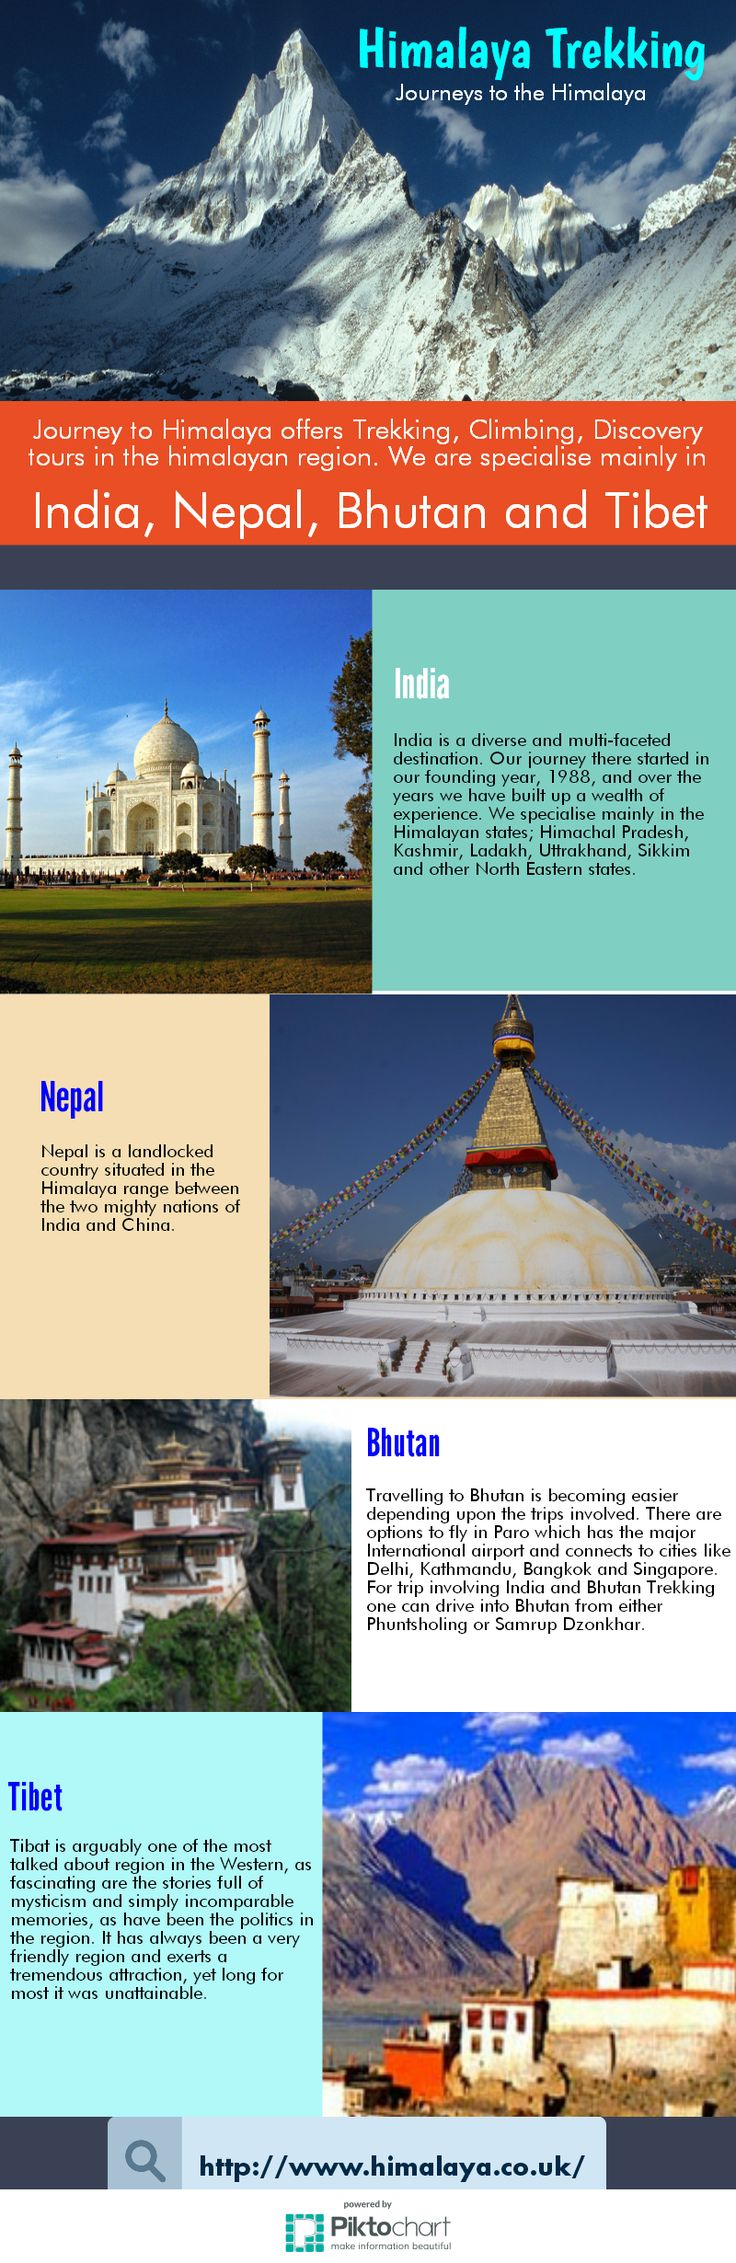 Journey to Himalaya offers Trekking, Climbing , Discovery tours in the Himalayan region. We are specialise mainly in India, Nepal, Bhutan and Tibet.